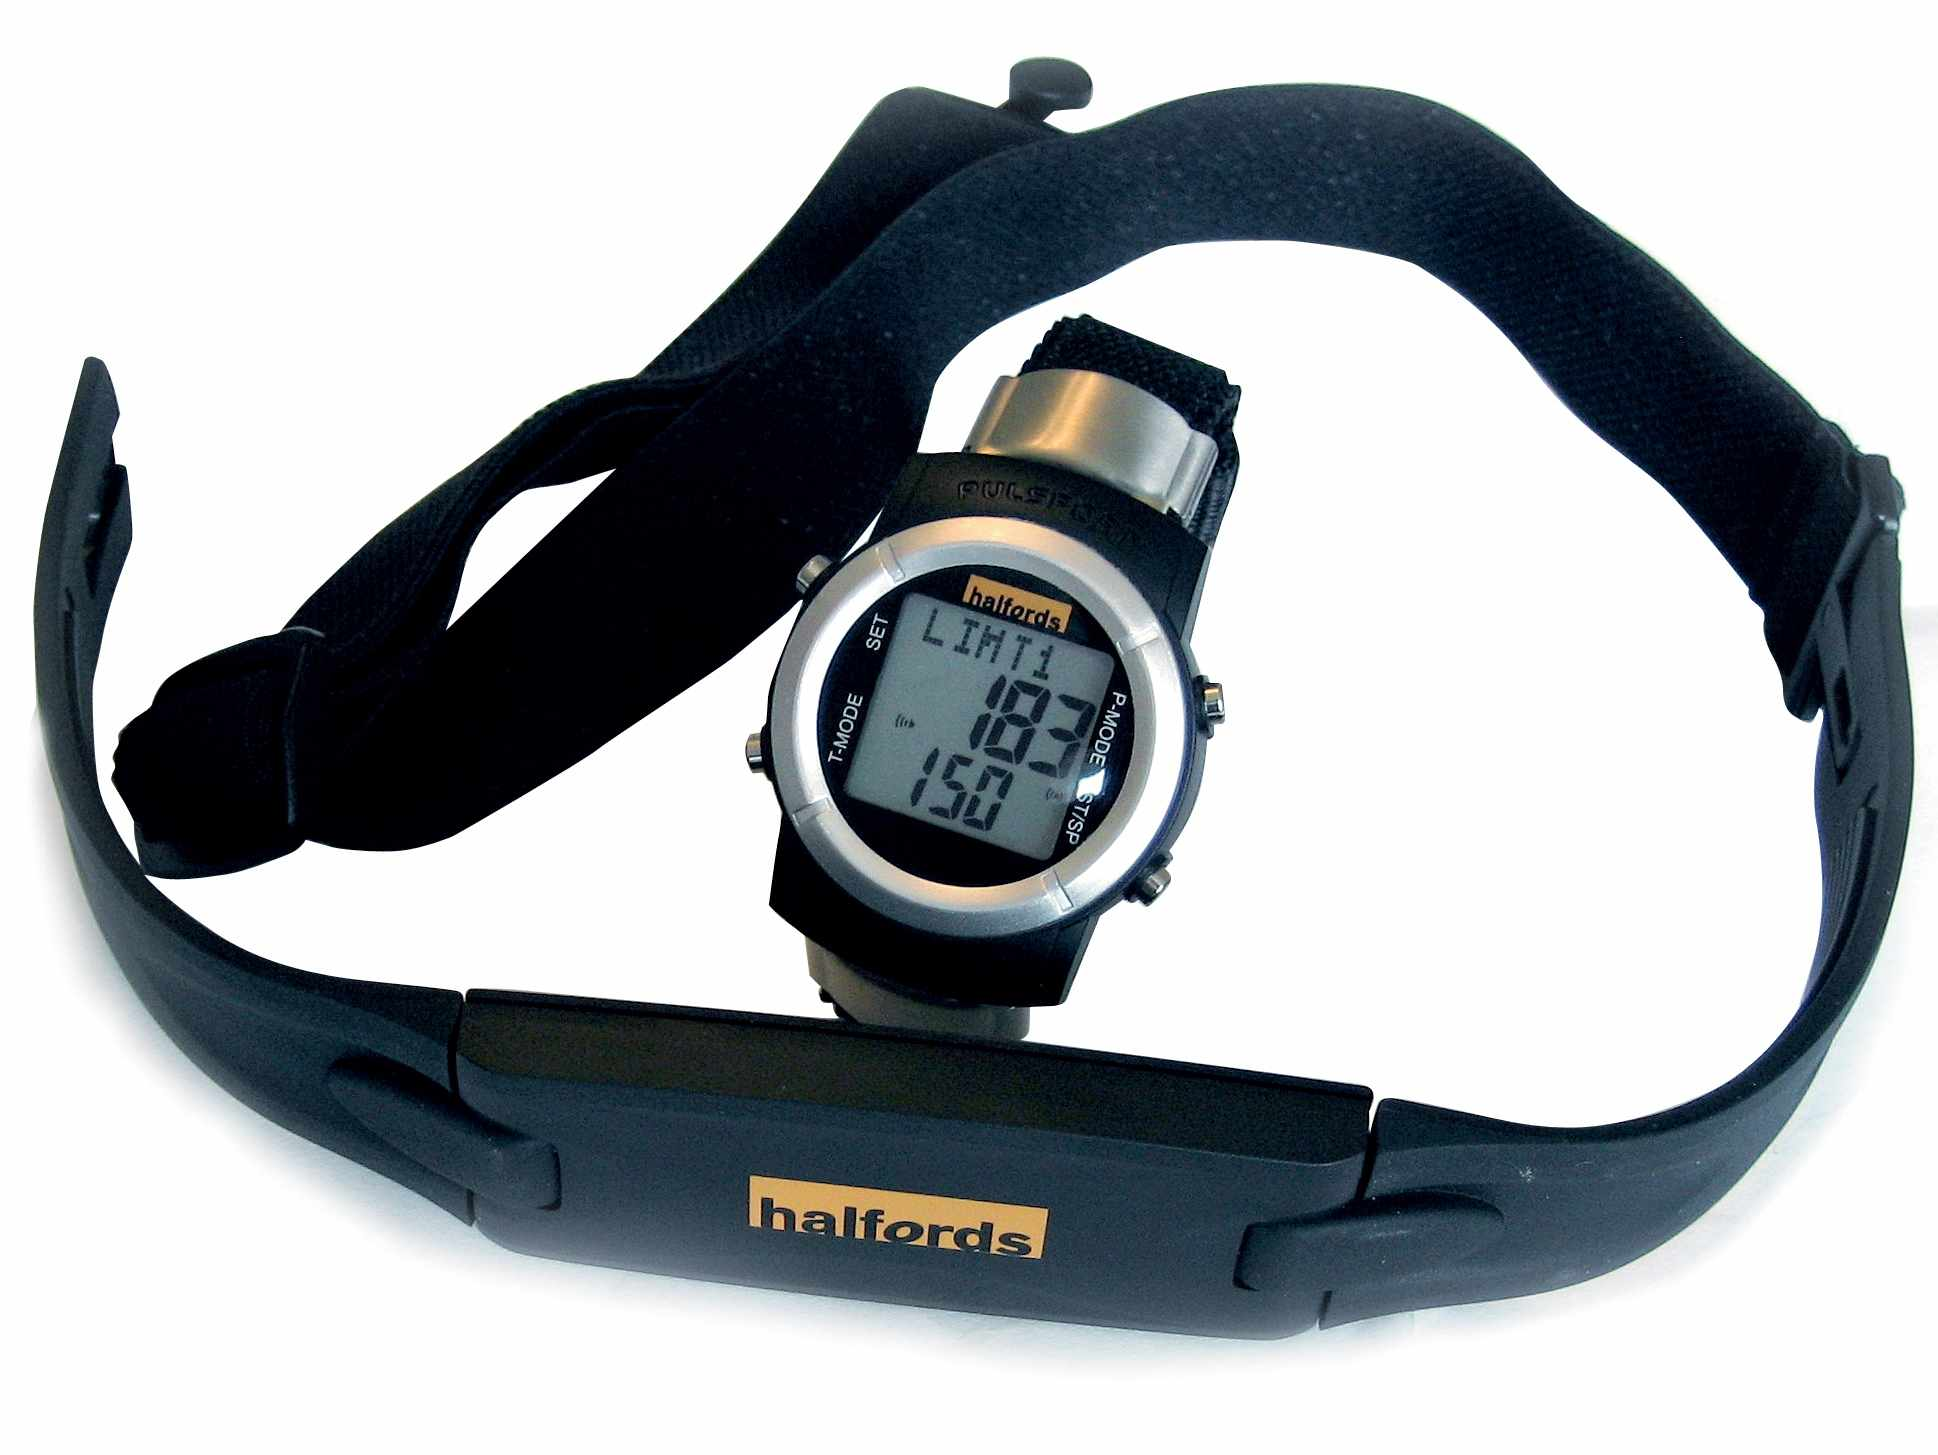 Entry level heart rate monitor, no bells or whistles but it does the job